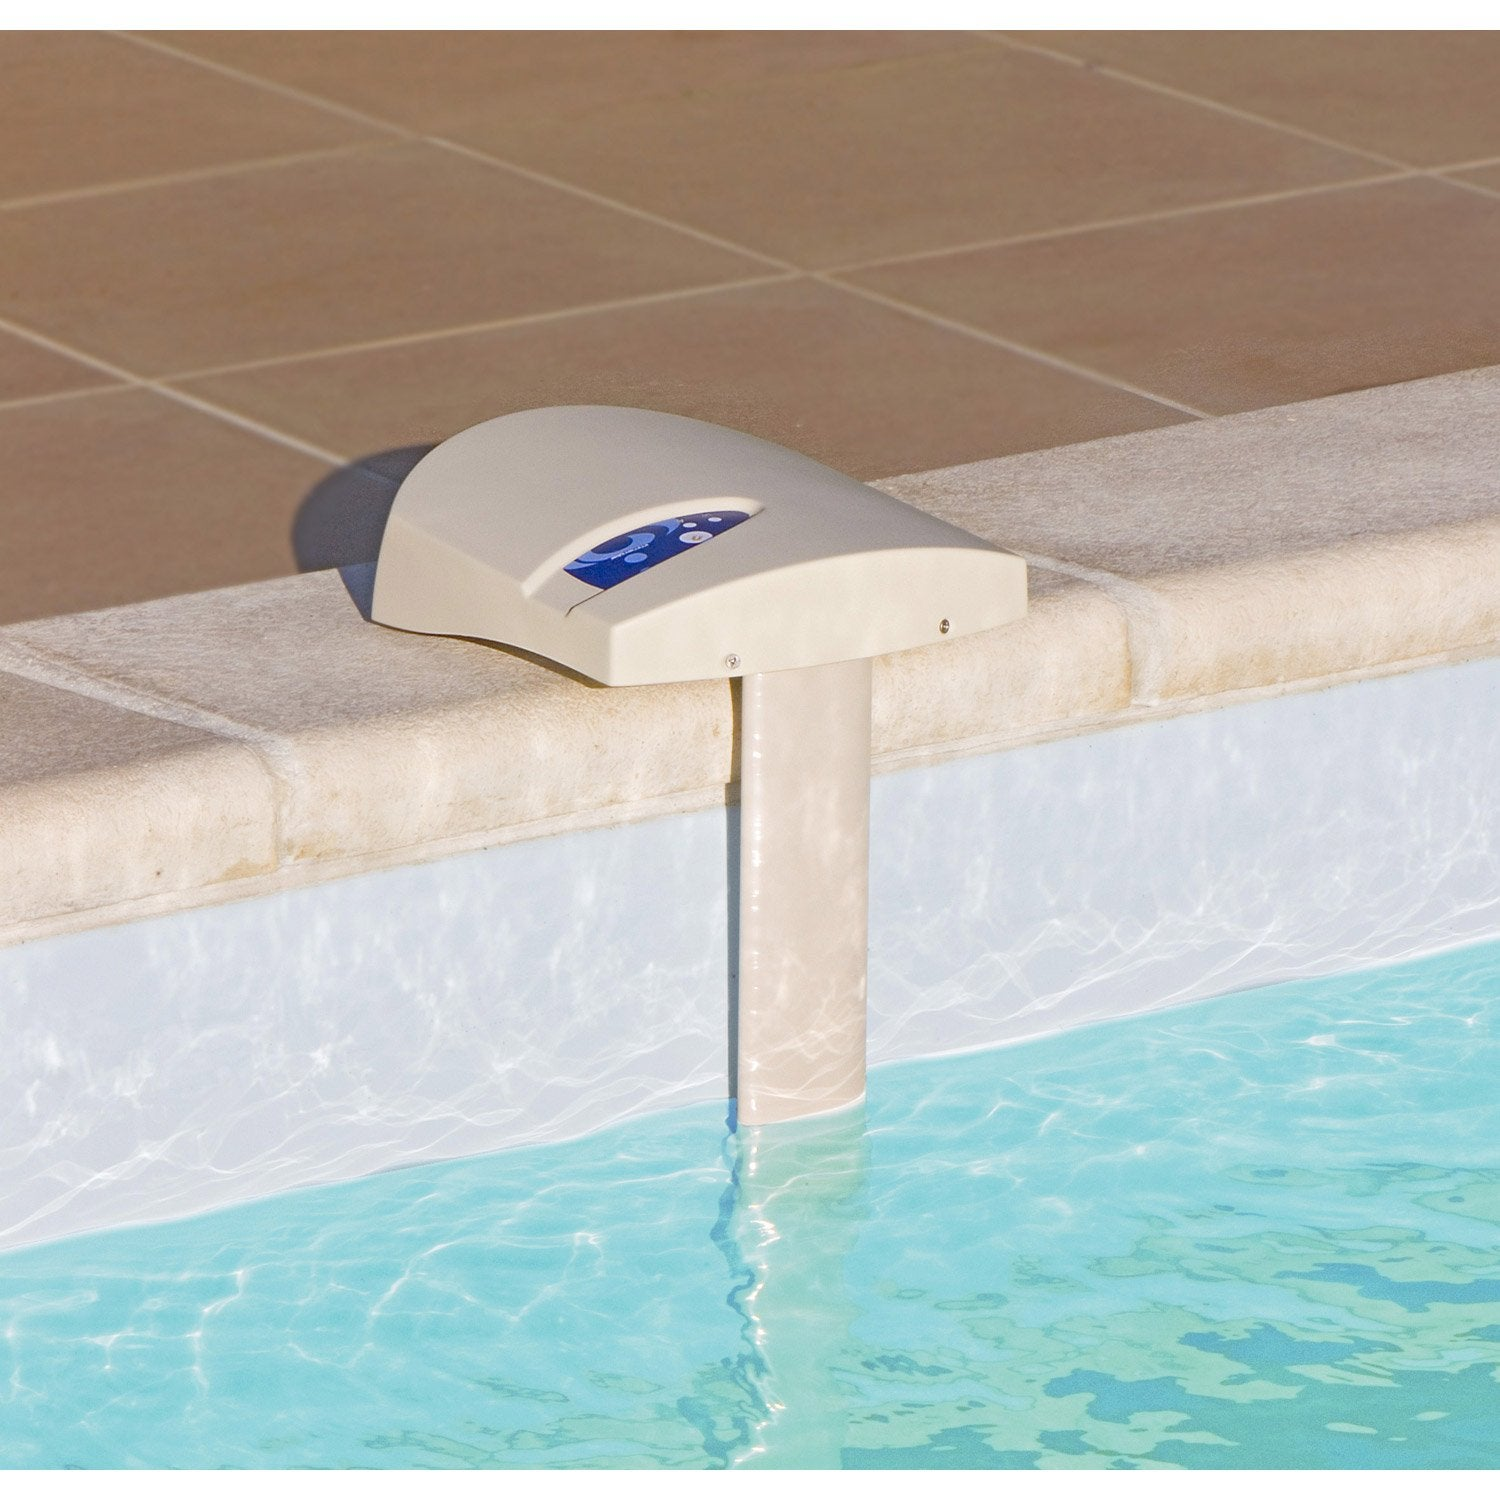 Alarme pour piscine for Alarme piscine infrarouge